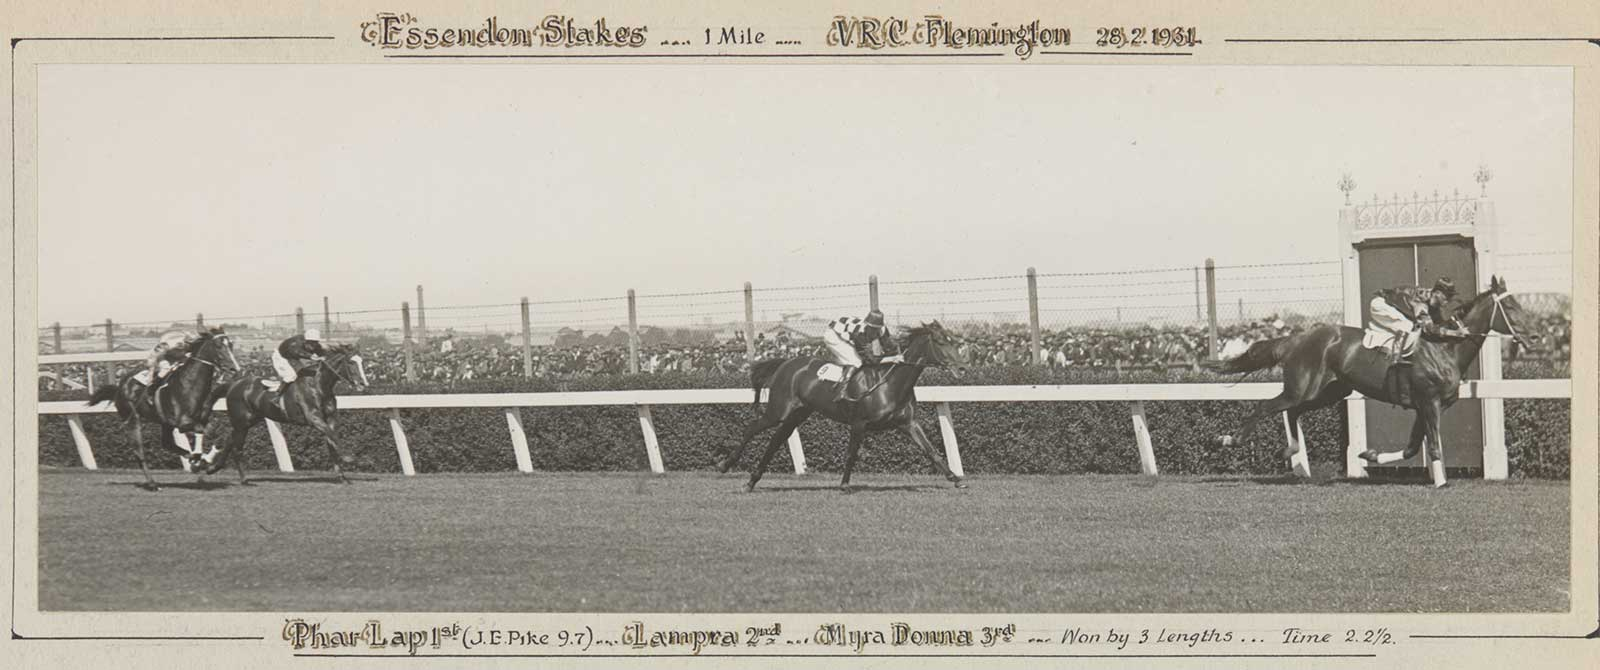 A black and white photo of Phar Lap winning the Essendon Stakes, 1931. - click to view larger image